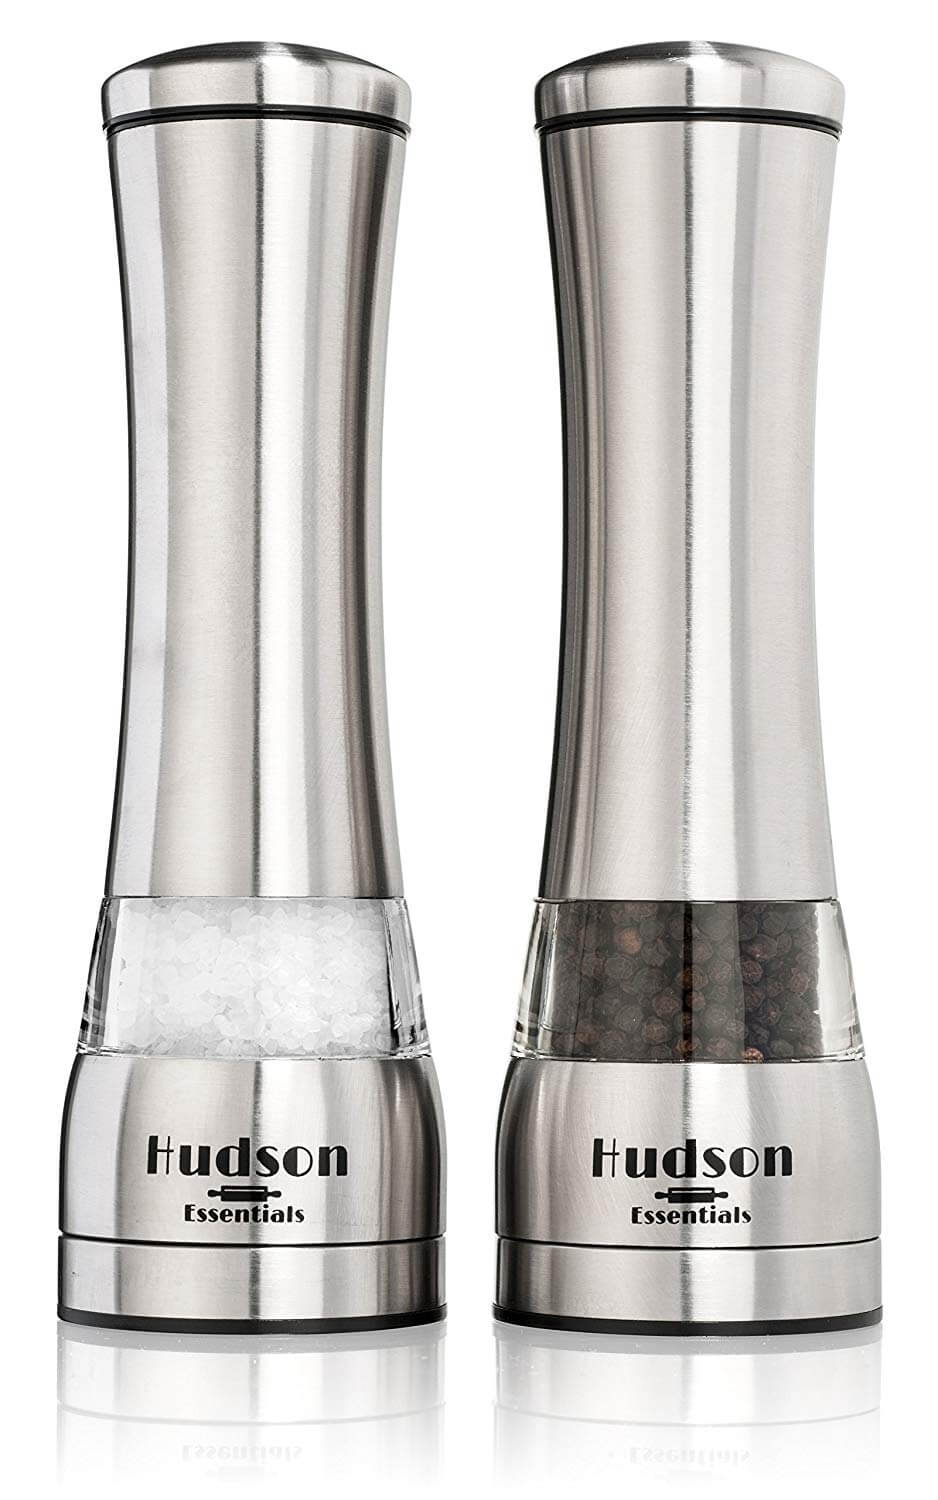 Hudson Essentials Deluxe Salt and Pepper Grinder Set